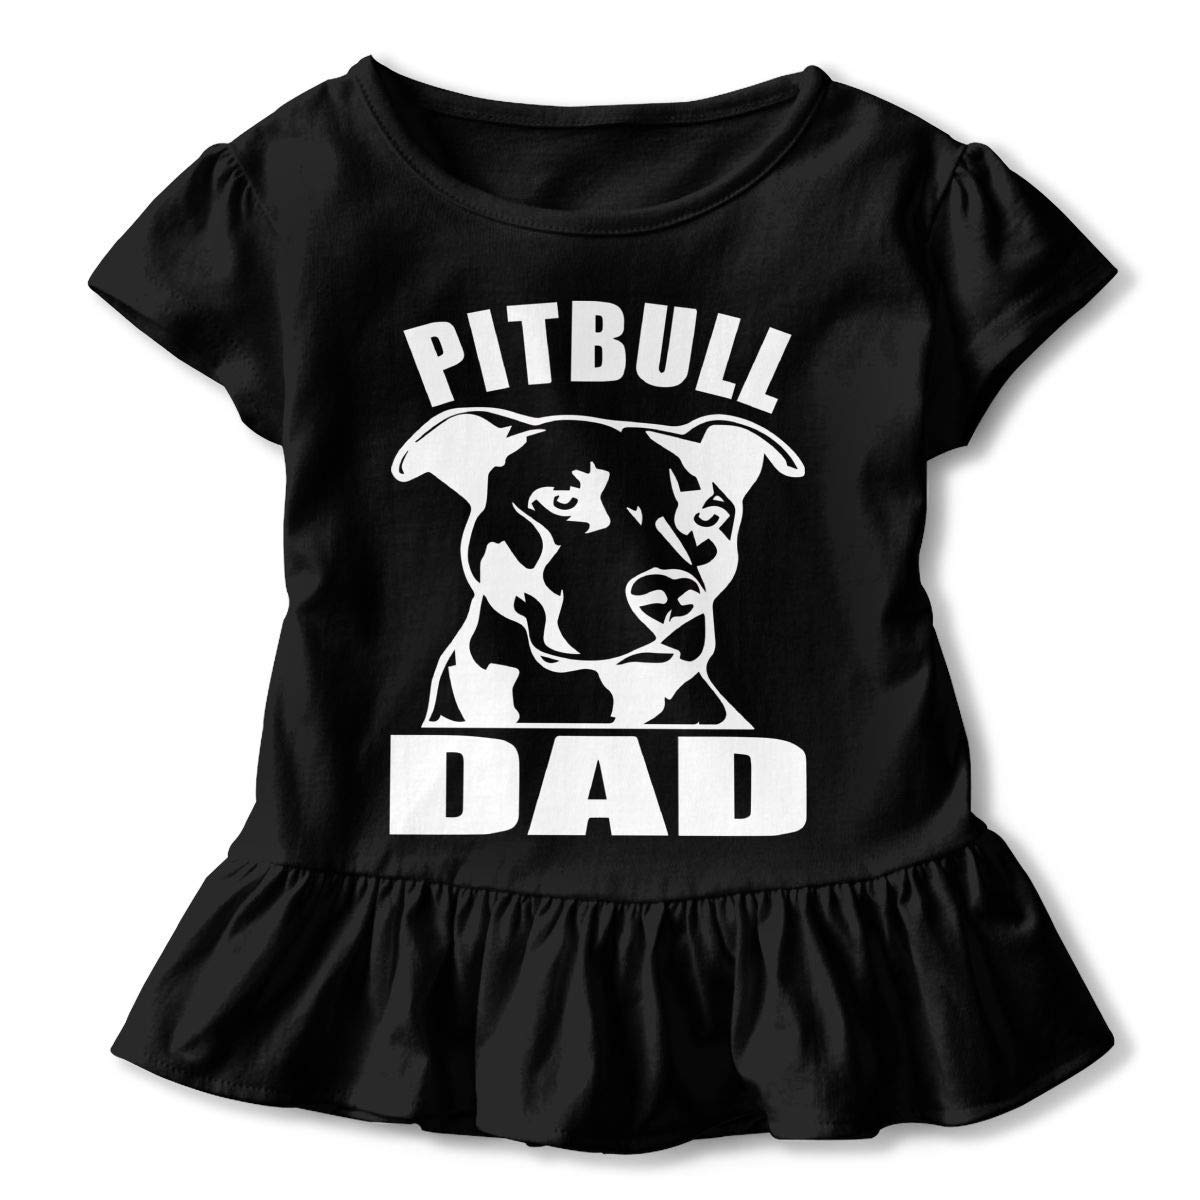 Cute Tunic Tops with Falbala PMsunglasses Short-Sleeve Pitbull DAD T-Shirts for Children 2-6T